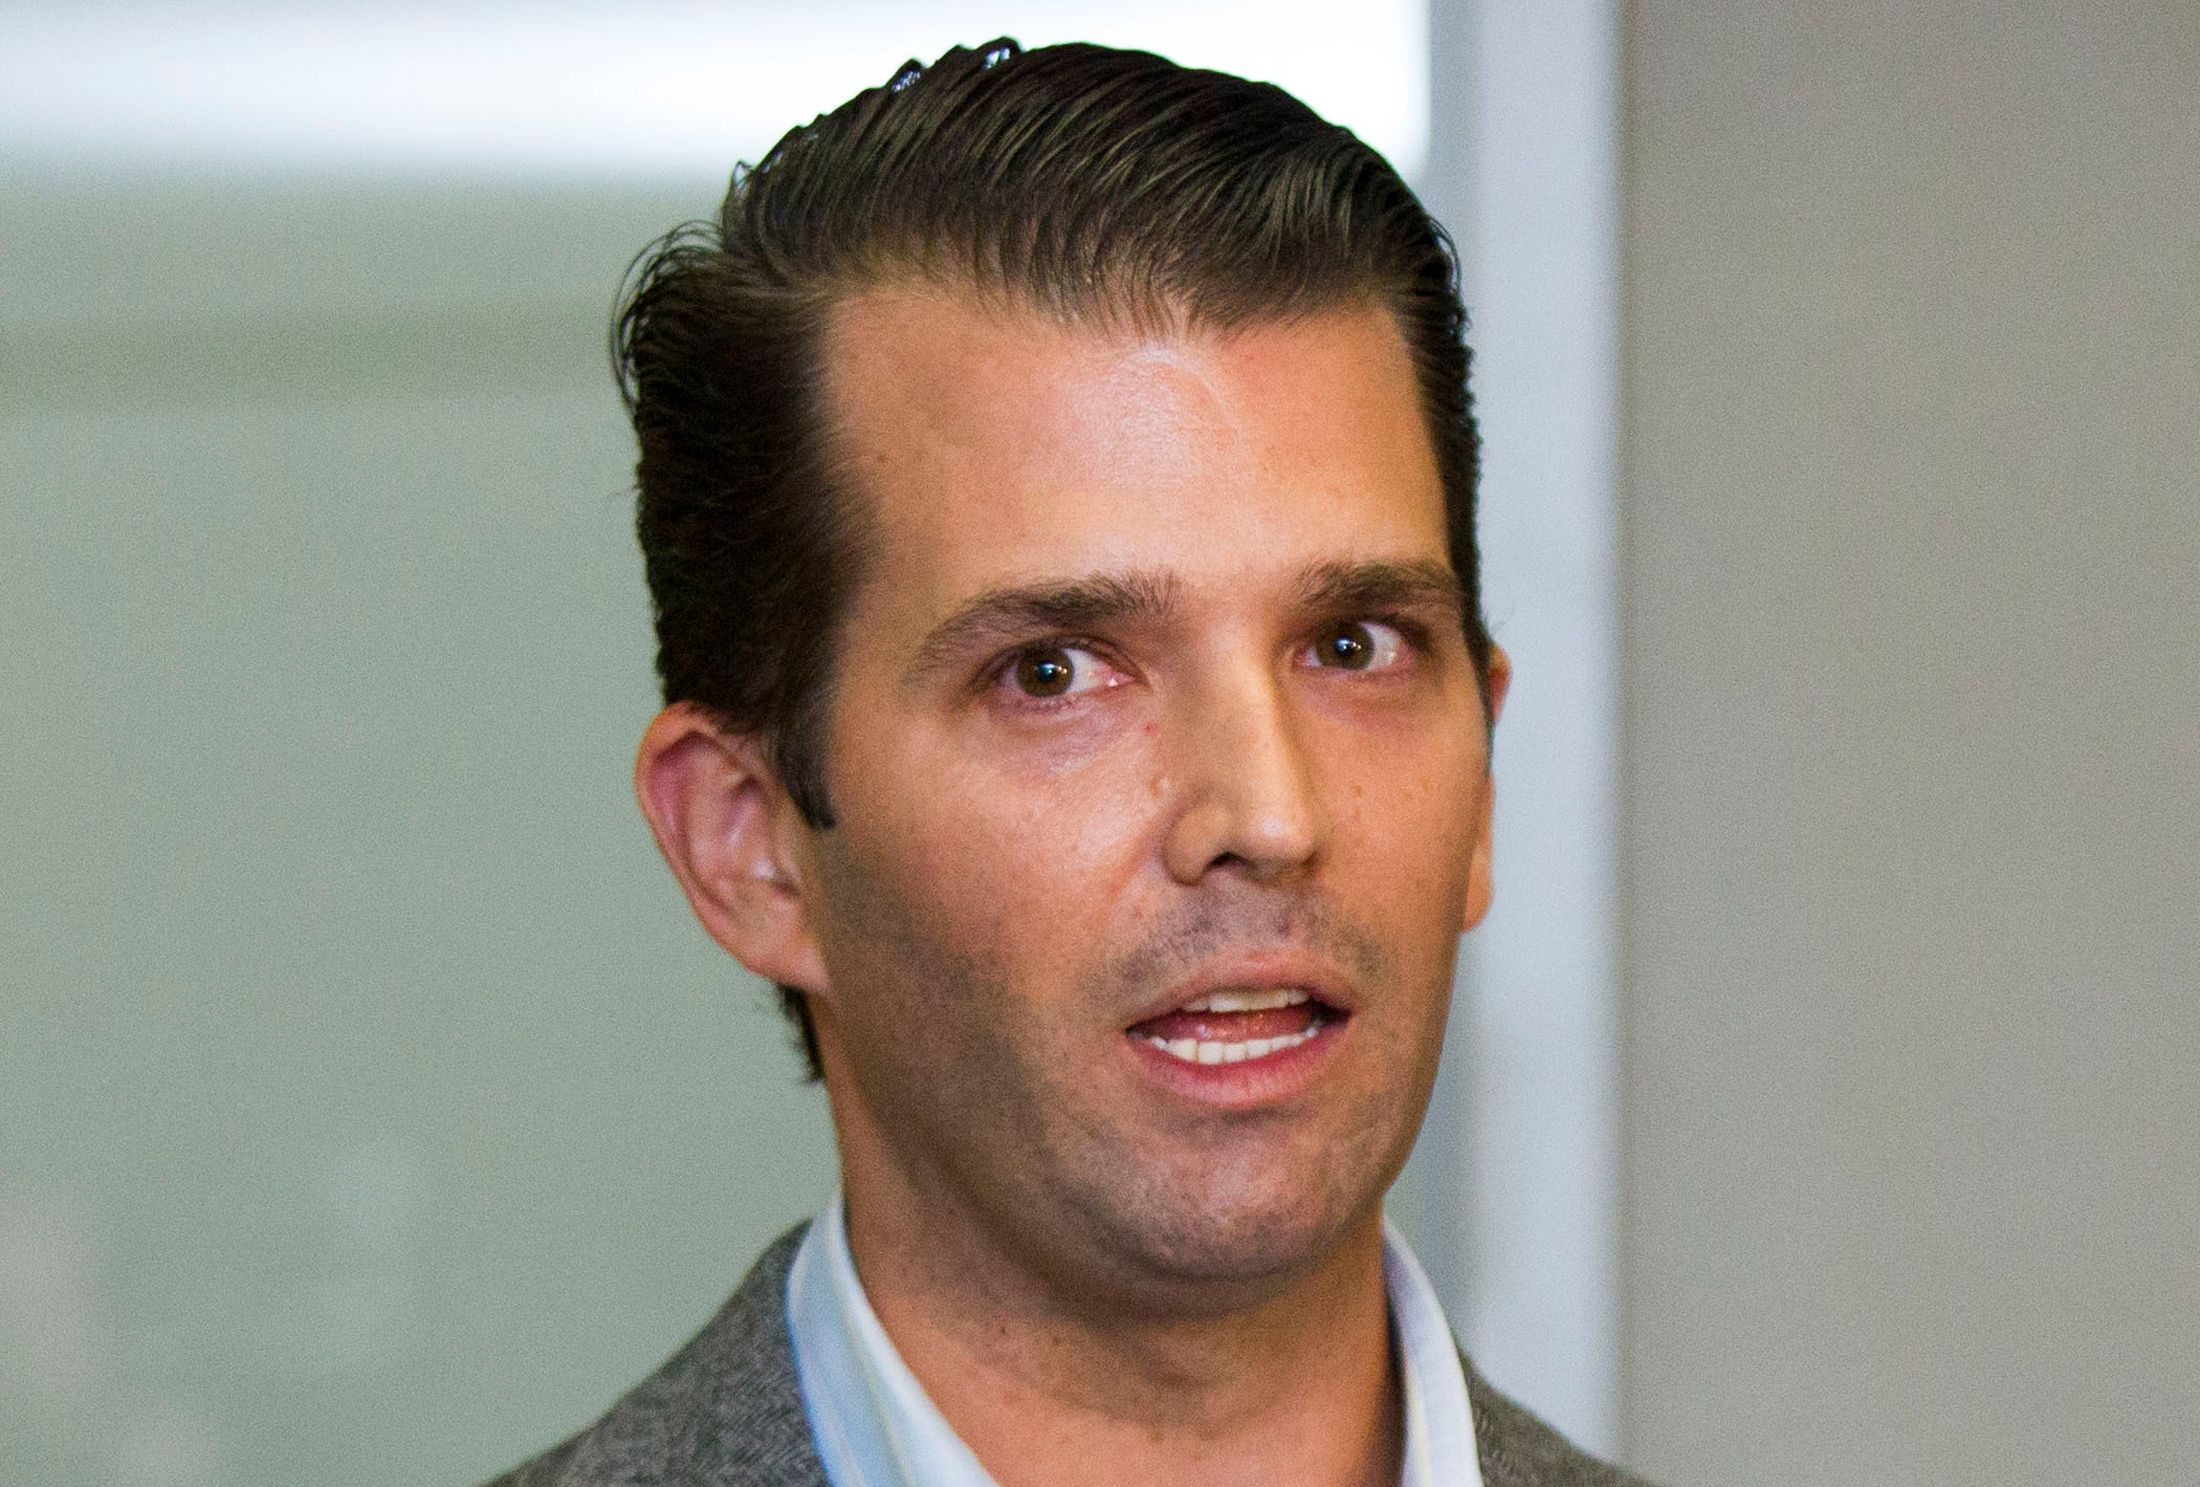 CNN Hits Back at Donald Trump Jr.'s 'Fake News' Claims in London Terror Attack Coverage